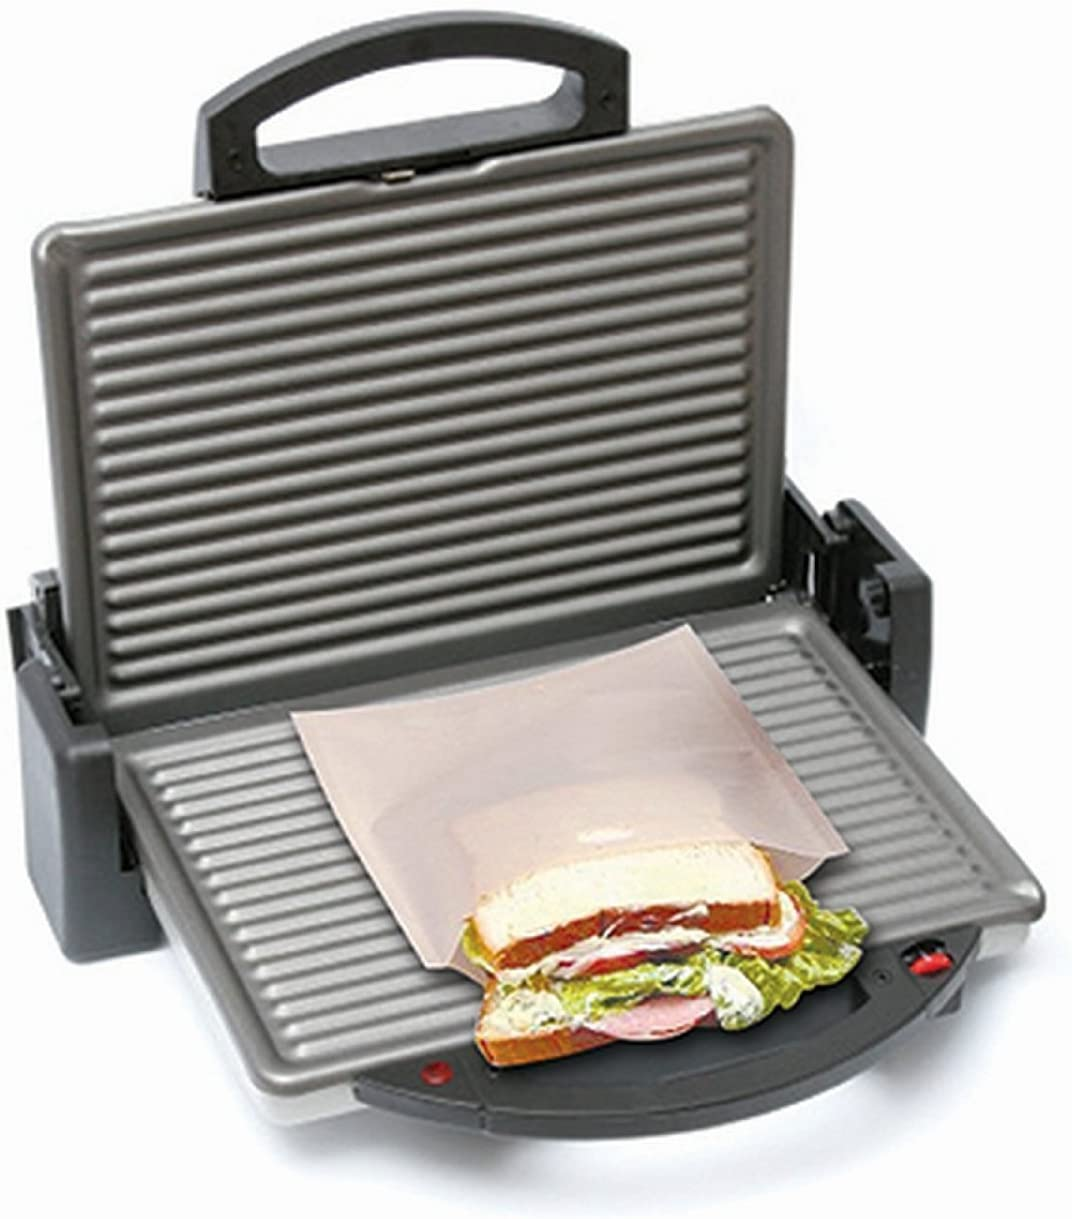 Amazon.com: Amigo Global bolsas para tostador sandwich ...